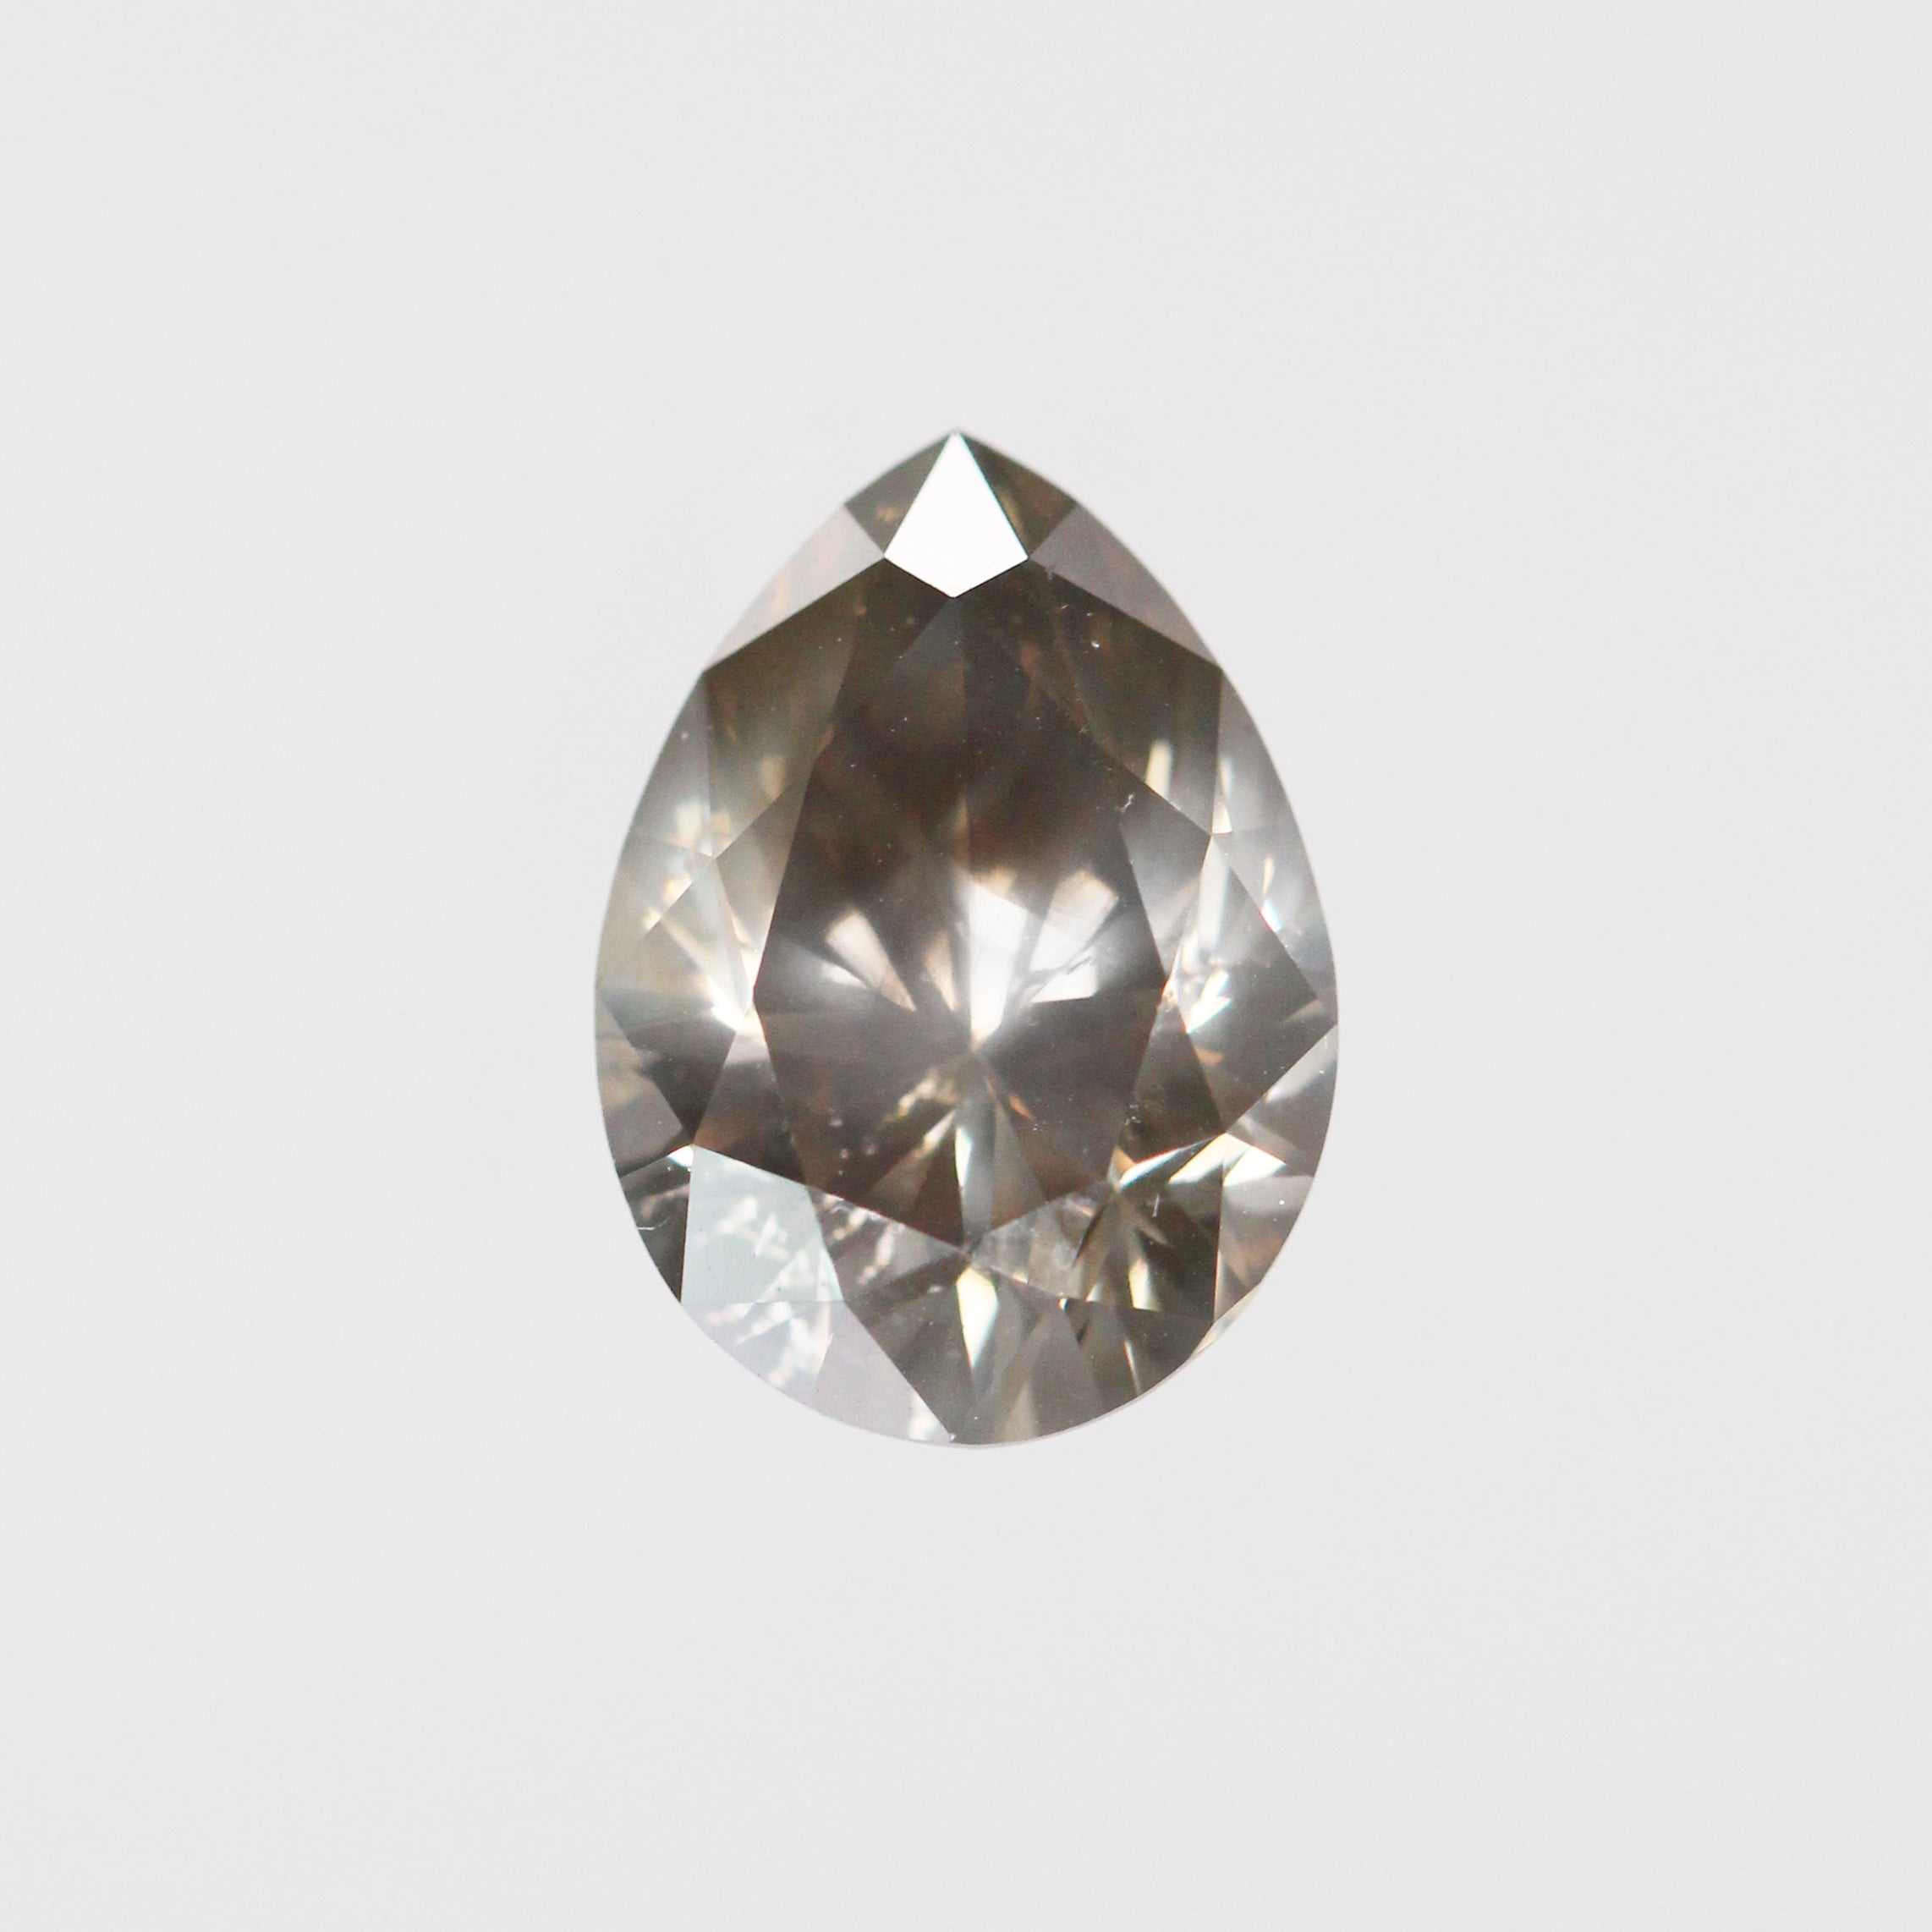 2.54 Carat Pear Celestial Diamond for Custom Work - Inventory Code PBCH254 - Celestial Diamonds ® by Midwinter Co.